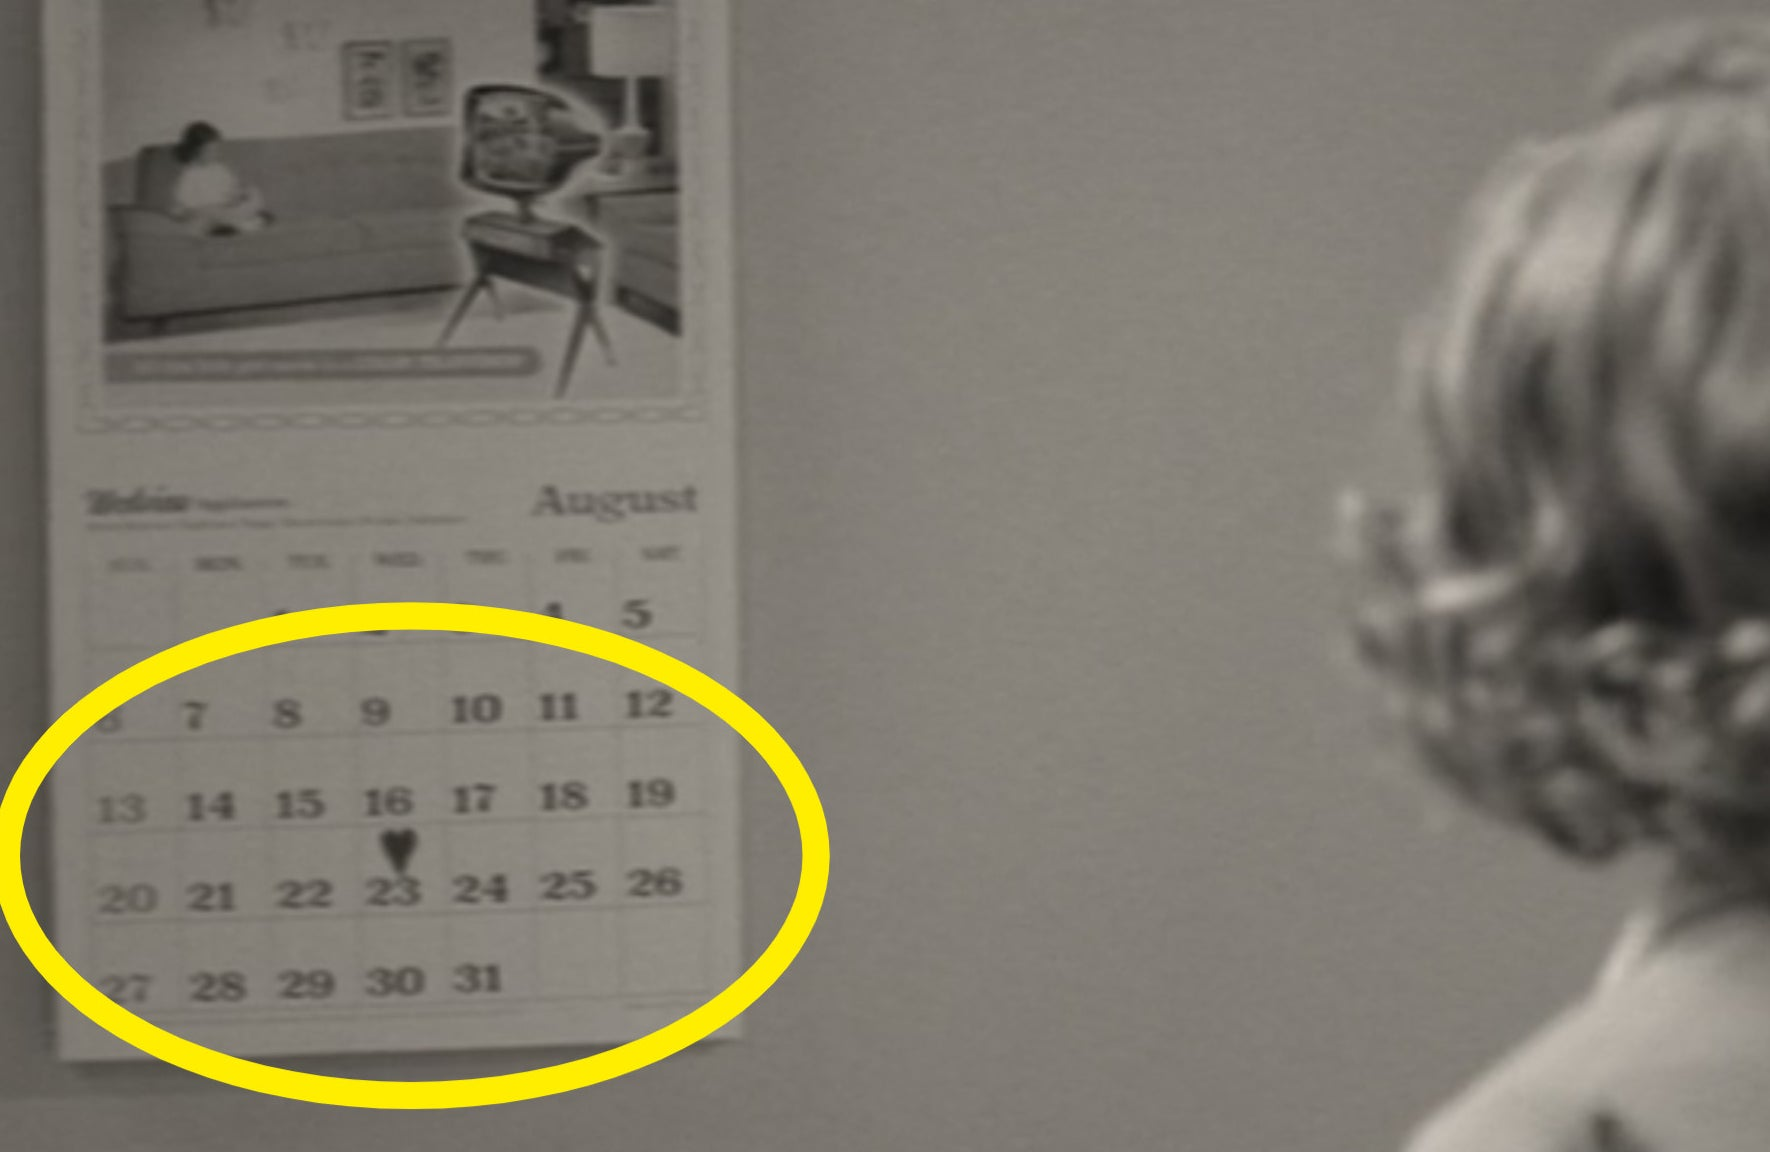 Wanda looking at a calendar with a heart on Aug. 23